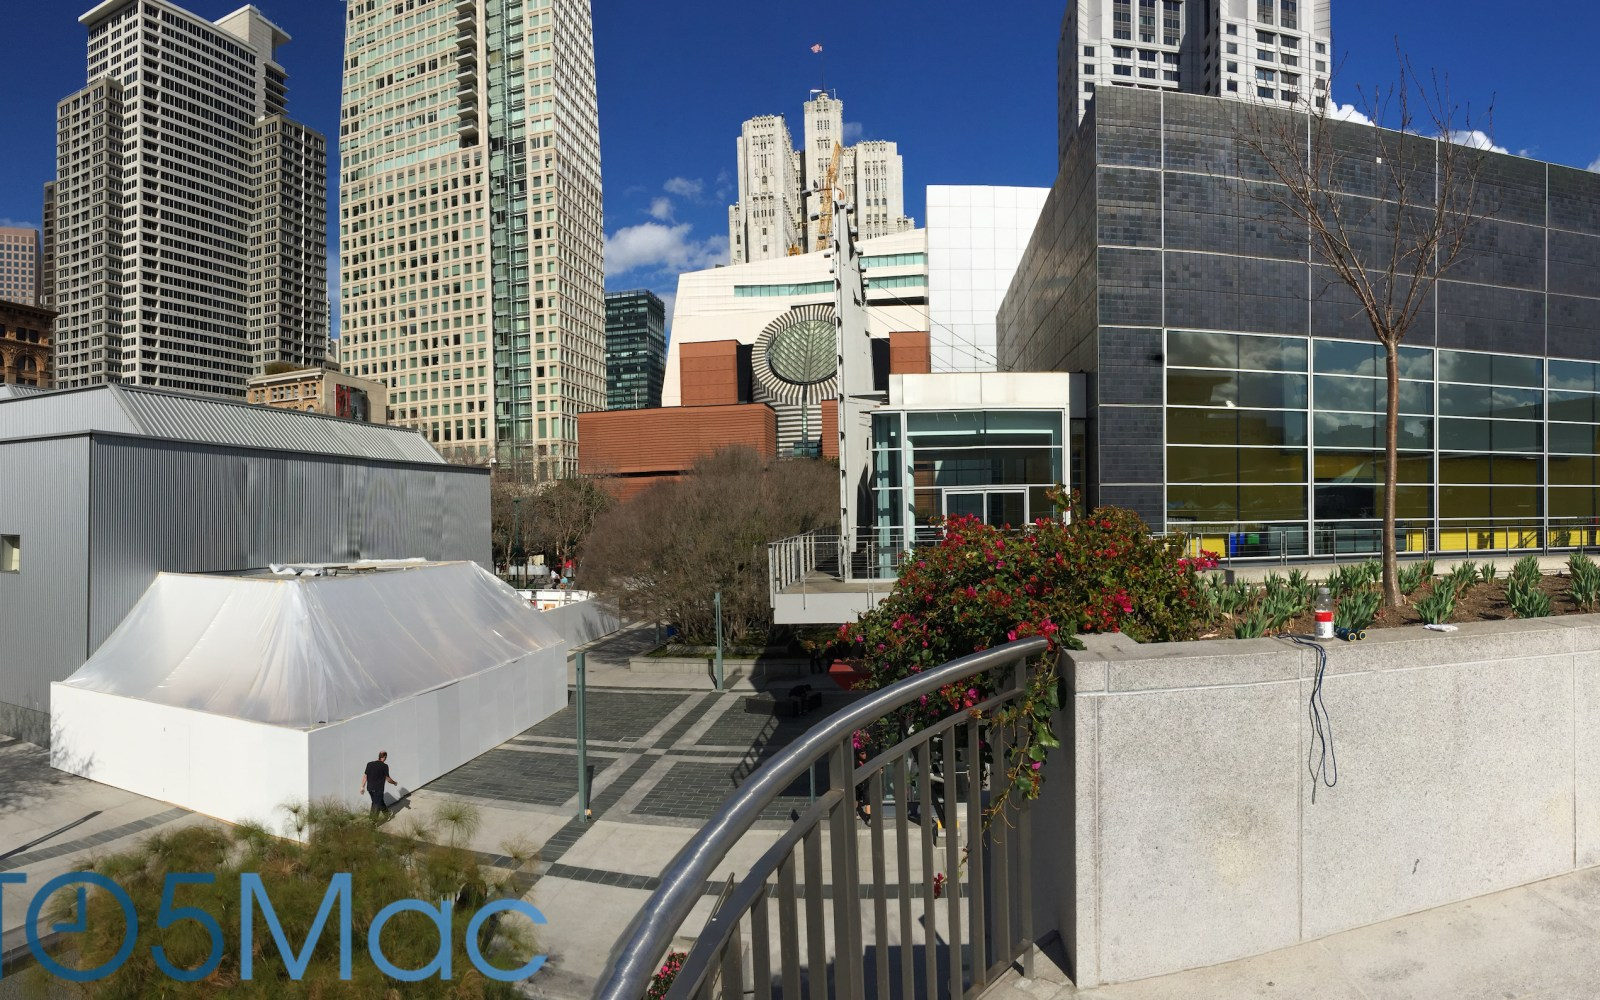 Apple constructing outdoor building next to Yerba Buena, likely demo area for Watch event on March 9th